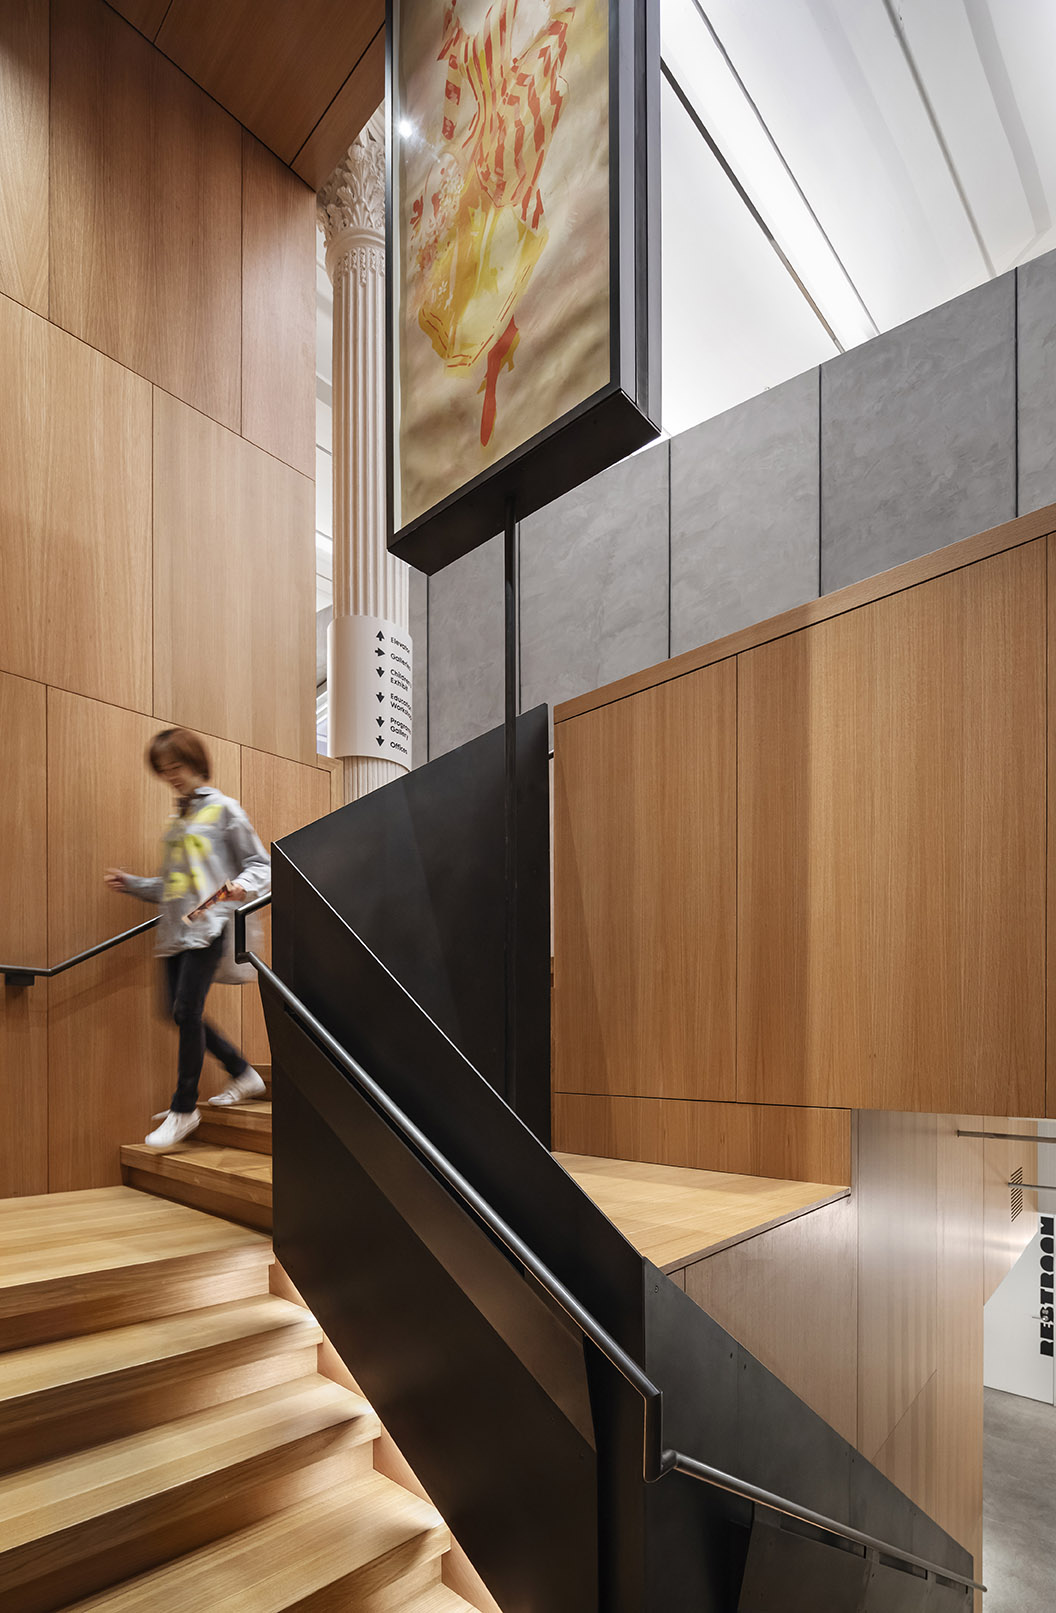 Descending to the basement, a staircase combines rift-sawn white oak with chemically blackened steel. Photography, Michael Moran / OTTO